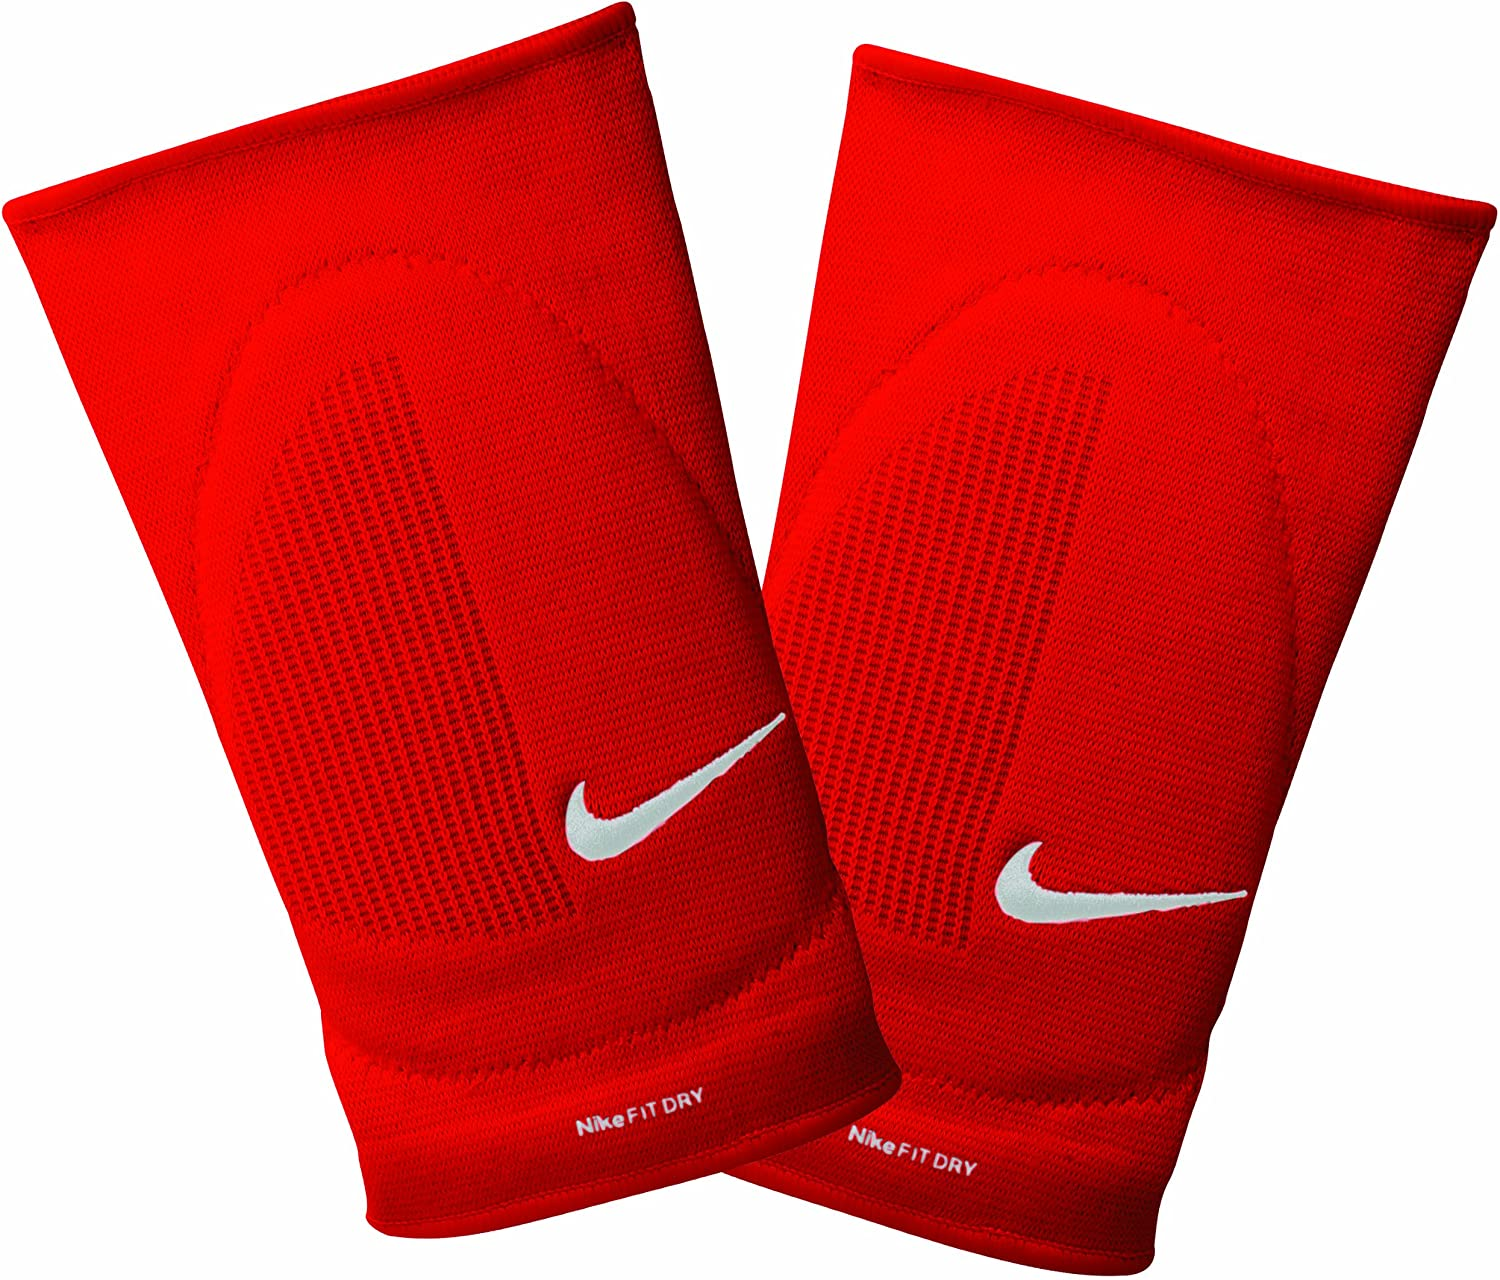 Amazon Com Nike Fit Dry Skinny Knee Pads Red Grey White Small Medium Volleyball Knee Pads Sports Outdoors